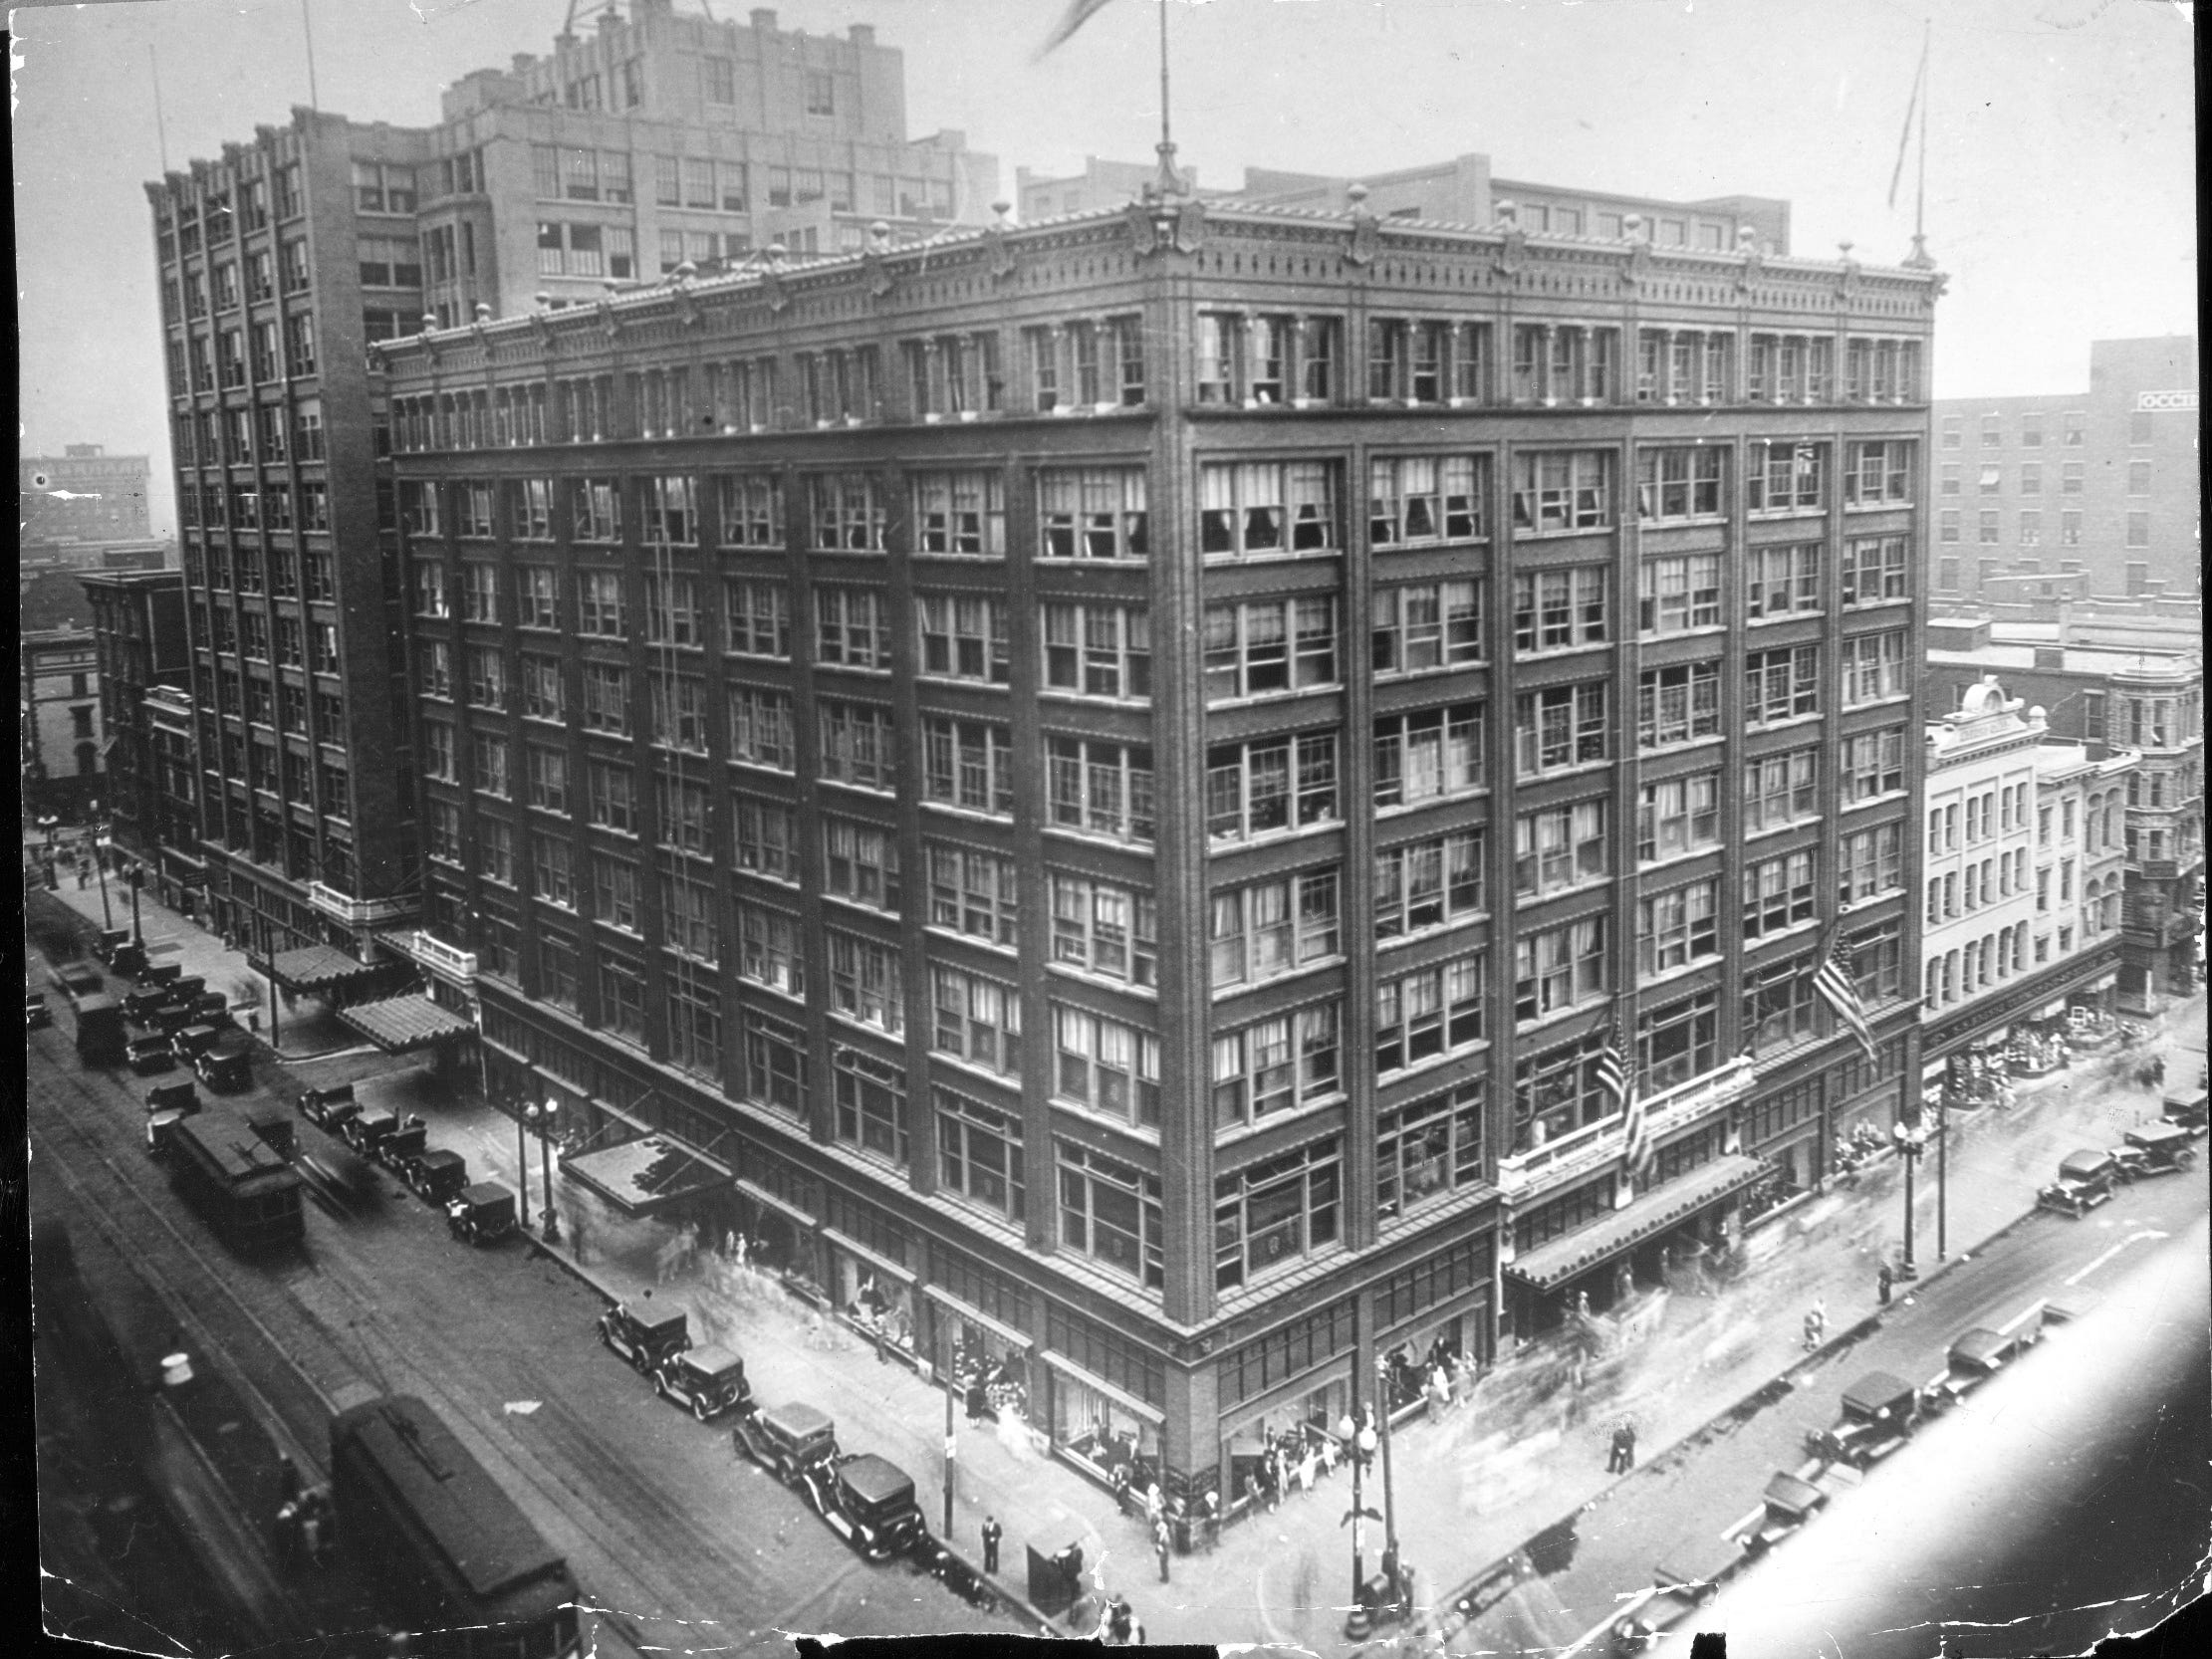 L.S. Ayres & Co. department store was always bustling looks pretty majestic in this Sept. 14, 1929 photo.